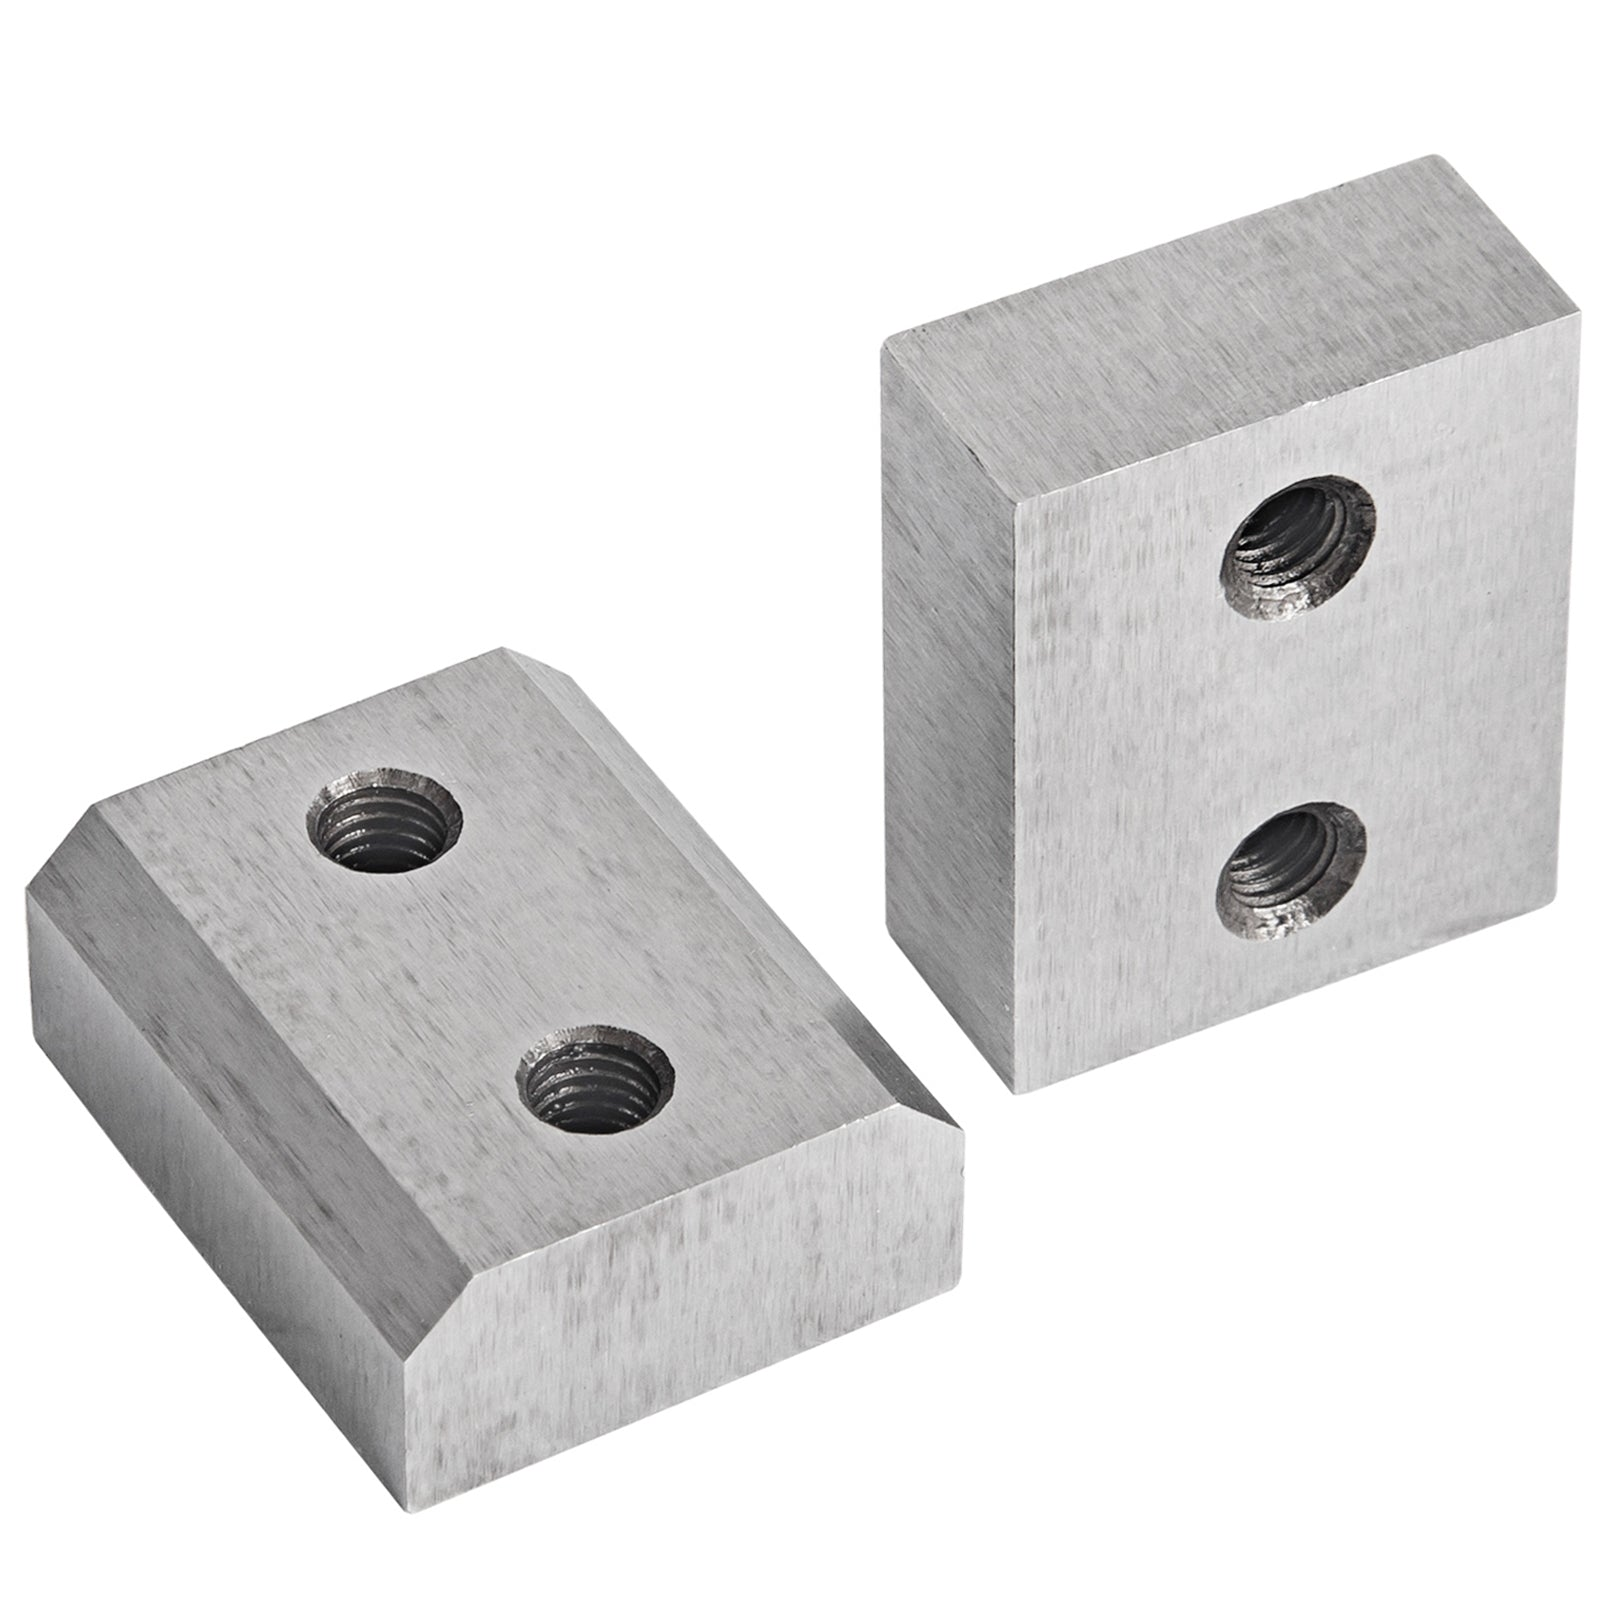 "Replacement Jaw Blades For Rc-25 Rebar Cutter 6 Sets For 1"" Rebar Cutter"